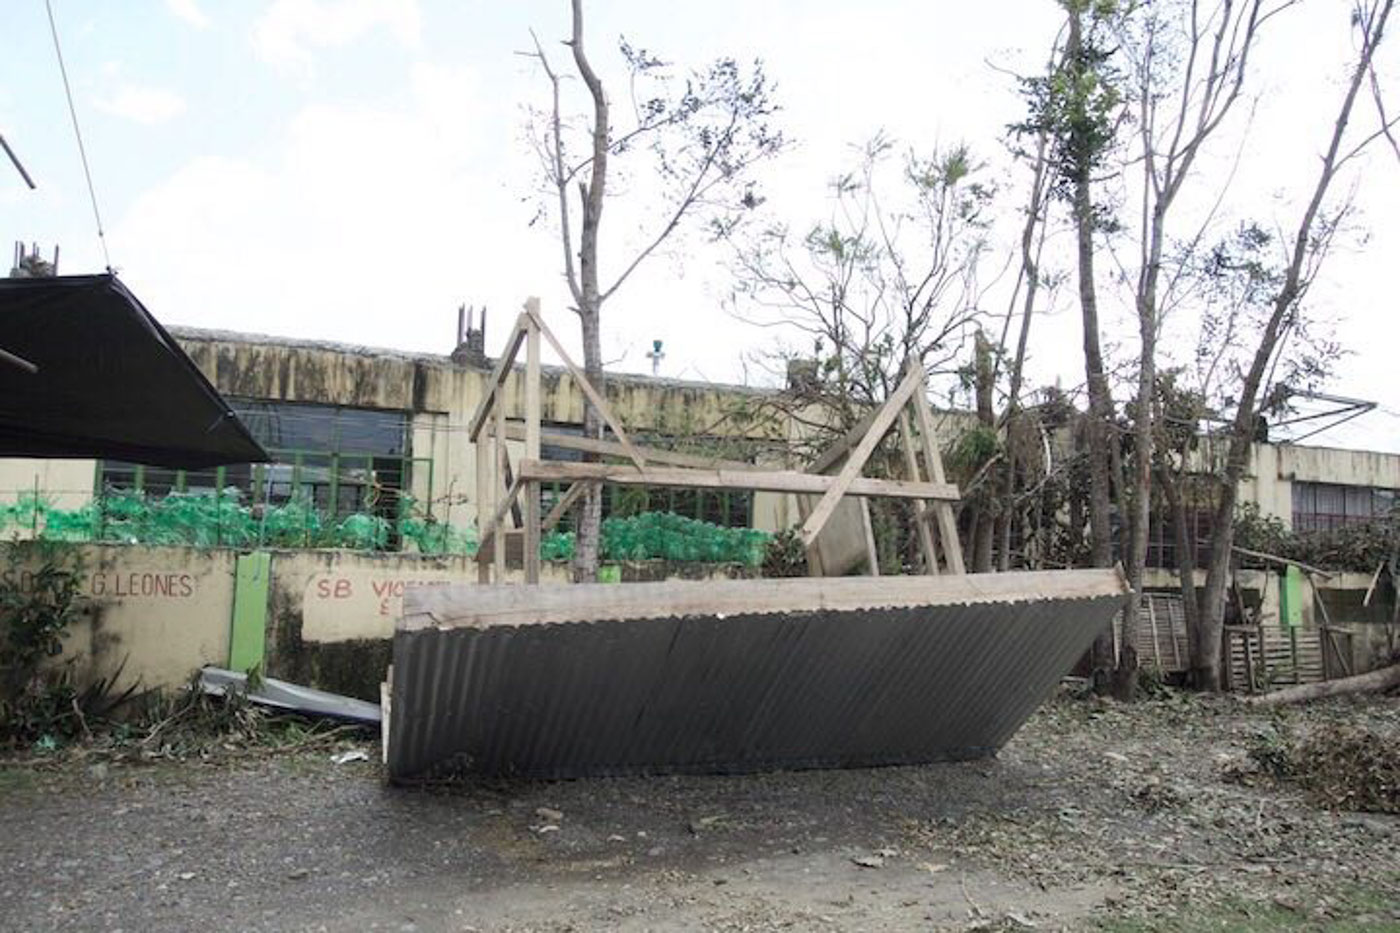 GROUND ZERO. Baggao Municipality in Cagayan province suffers devastation in infrastructure and loss of crops from being the first to get hit by Typhoon Ompong (Mangkhut). Photos by Rambo Talabong/Rappler